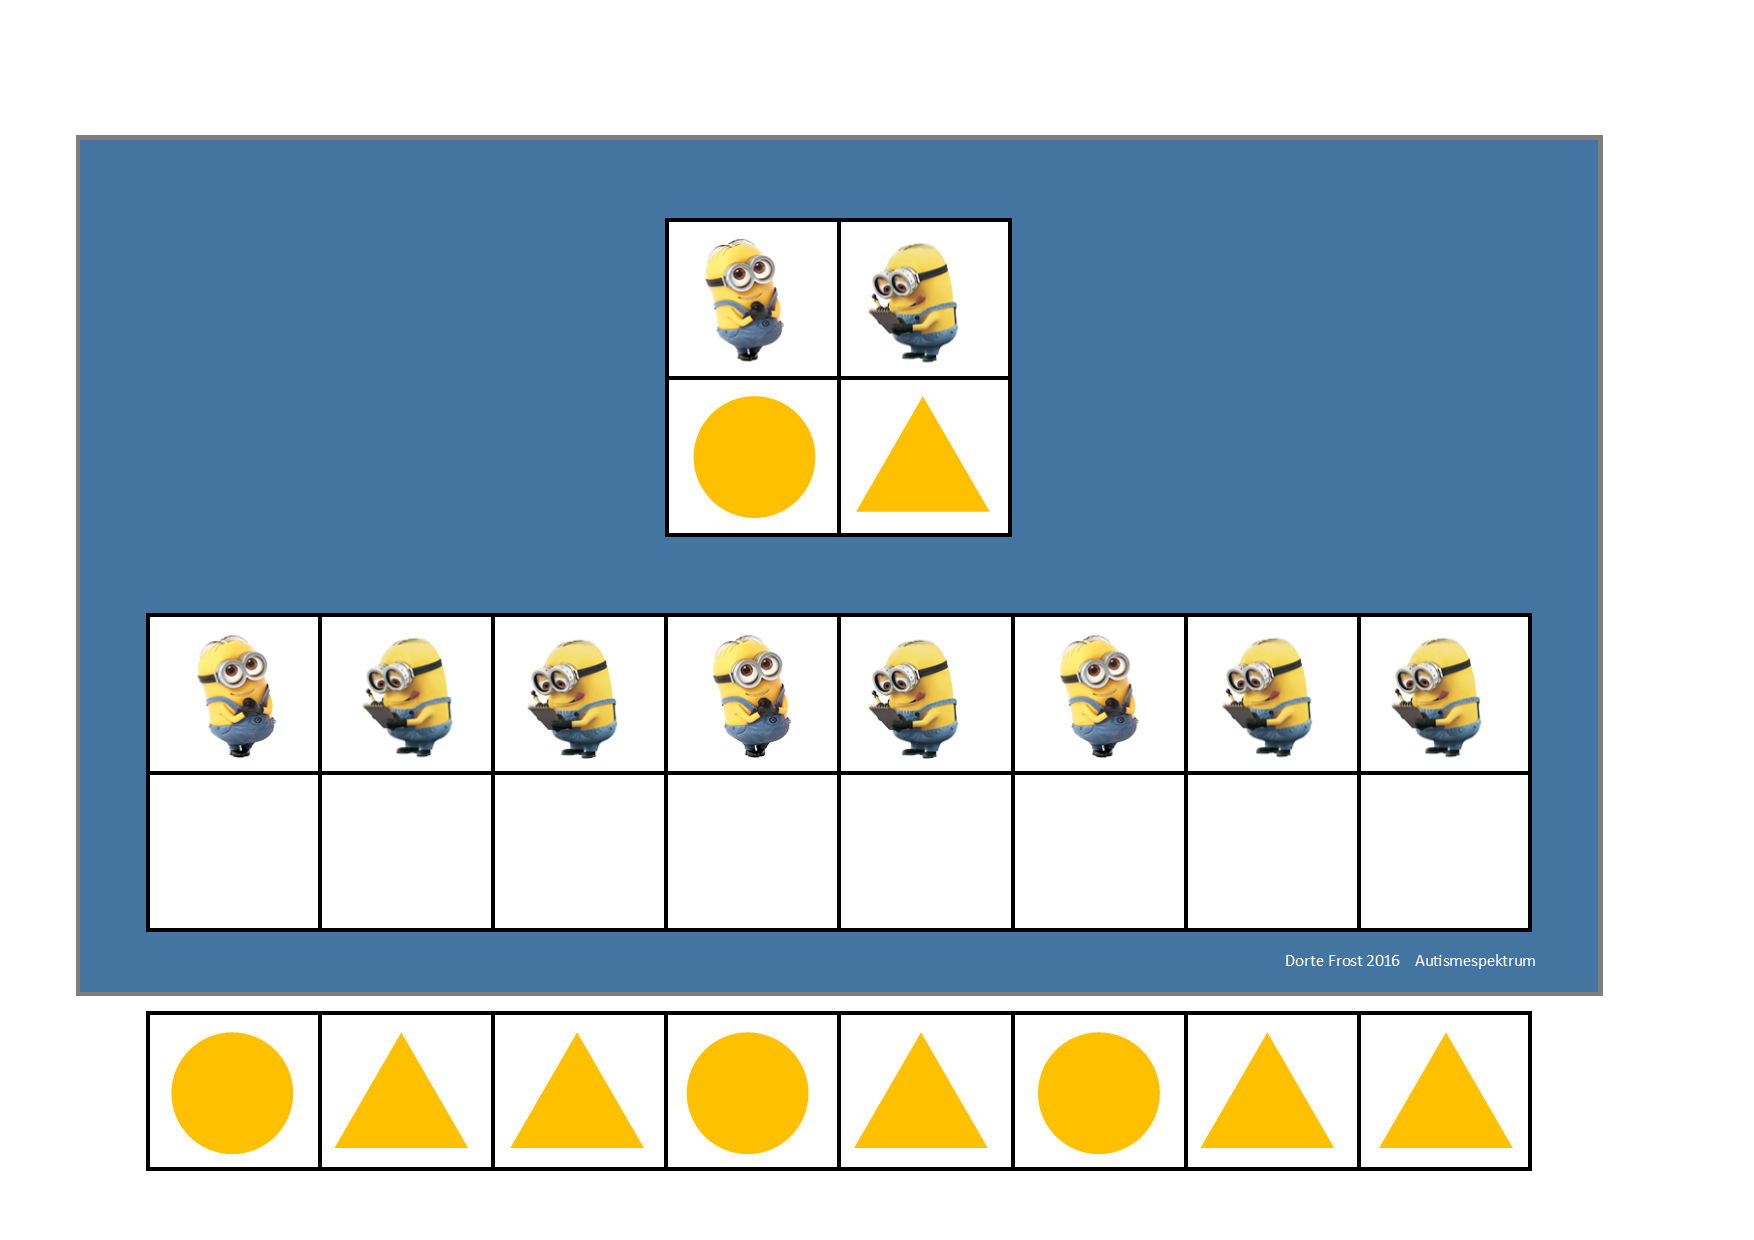 Board And Tiles For The Minions Visual Perceptiongame By